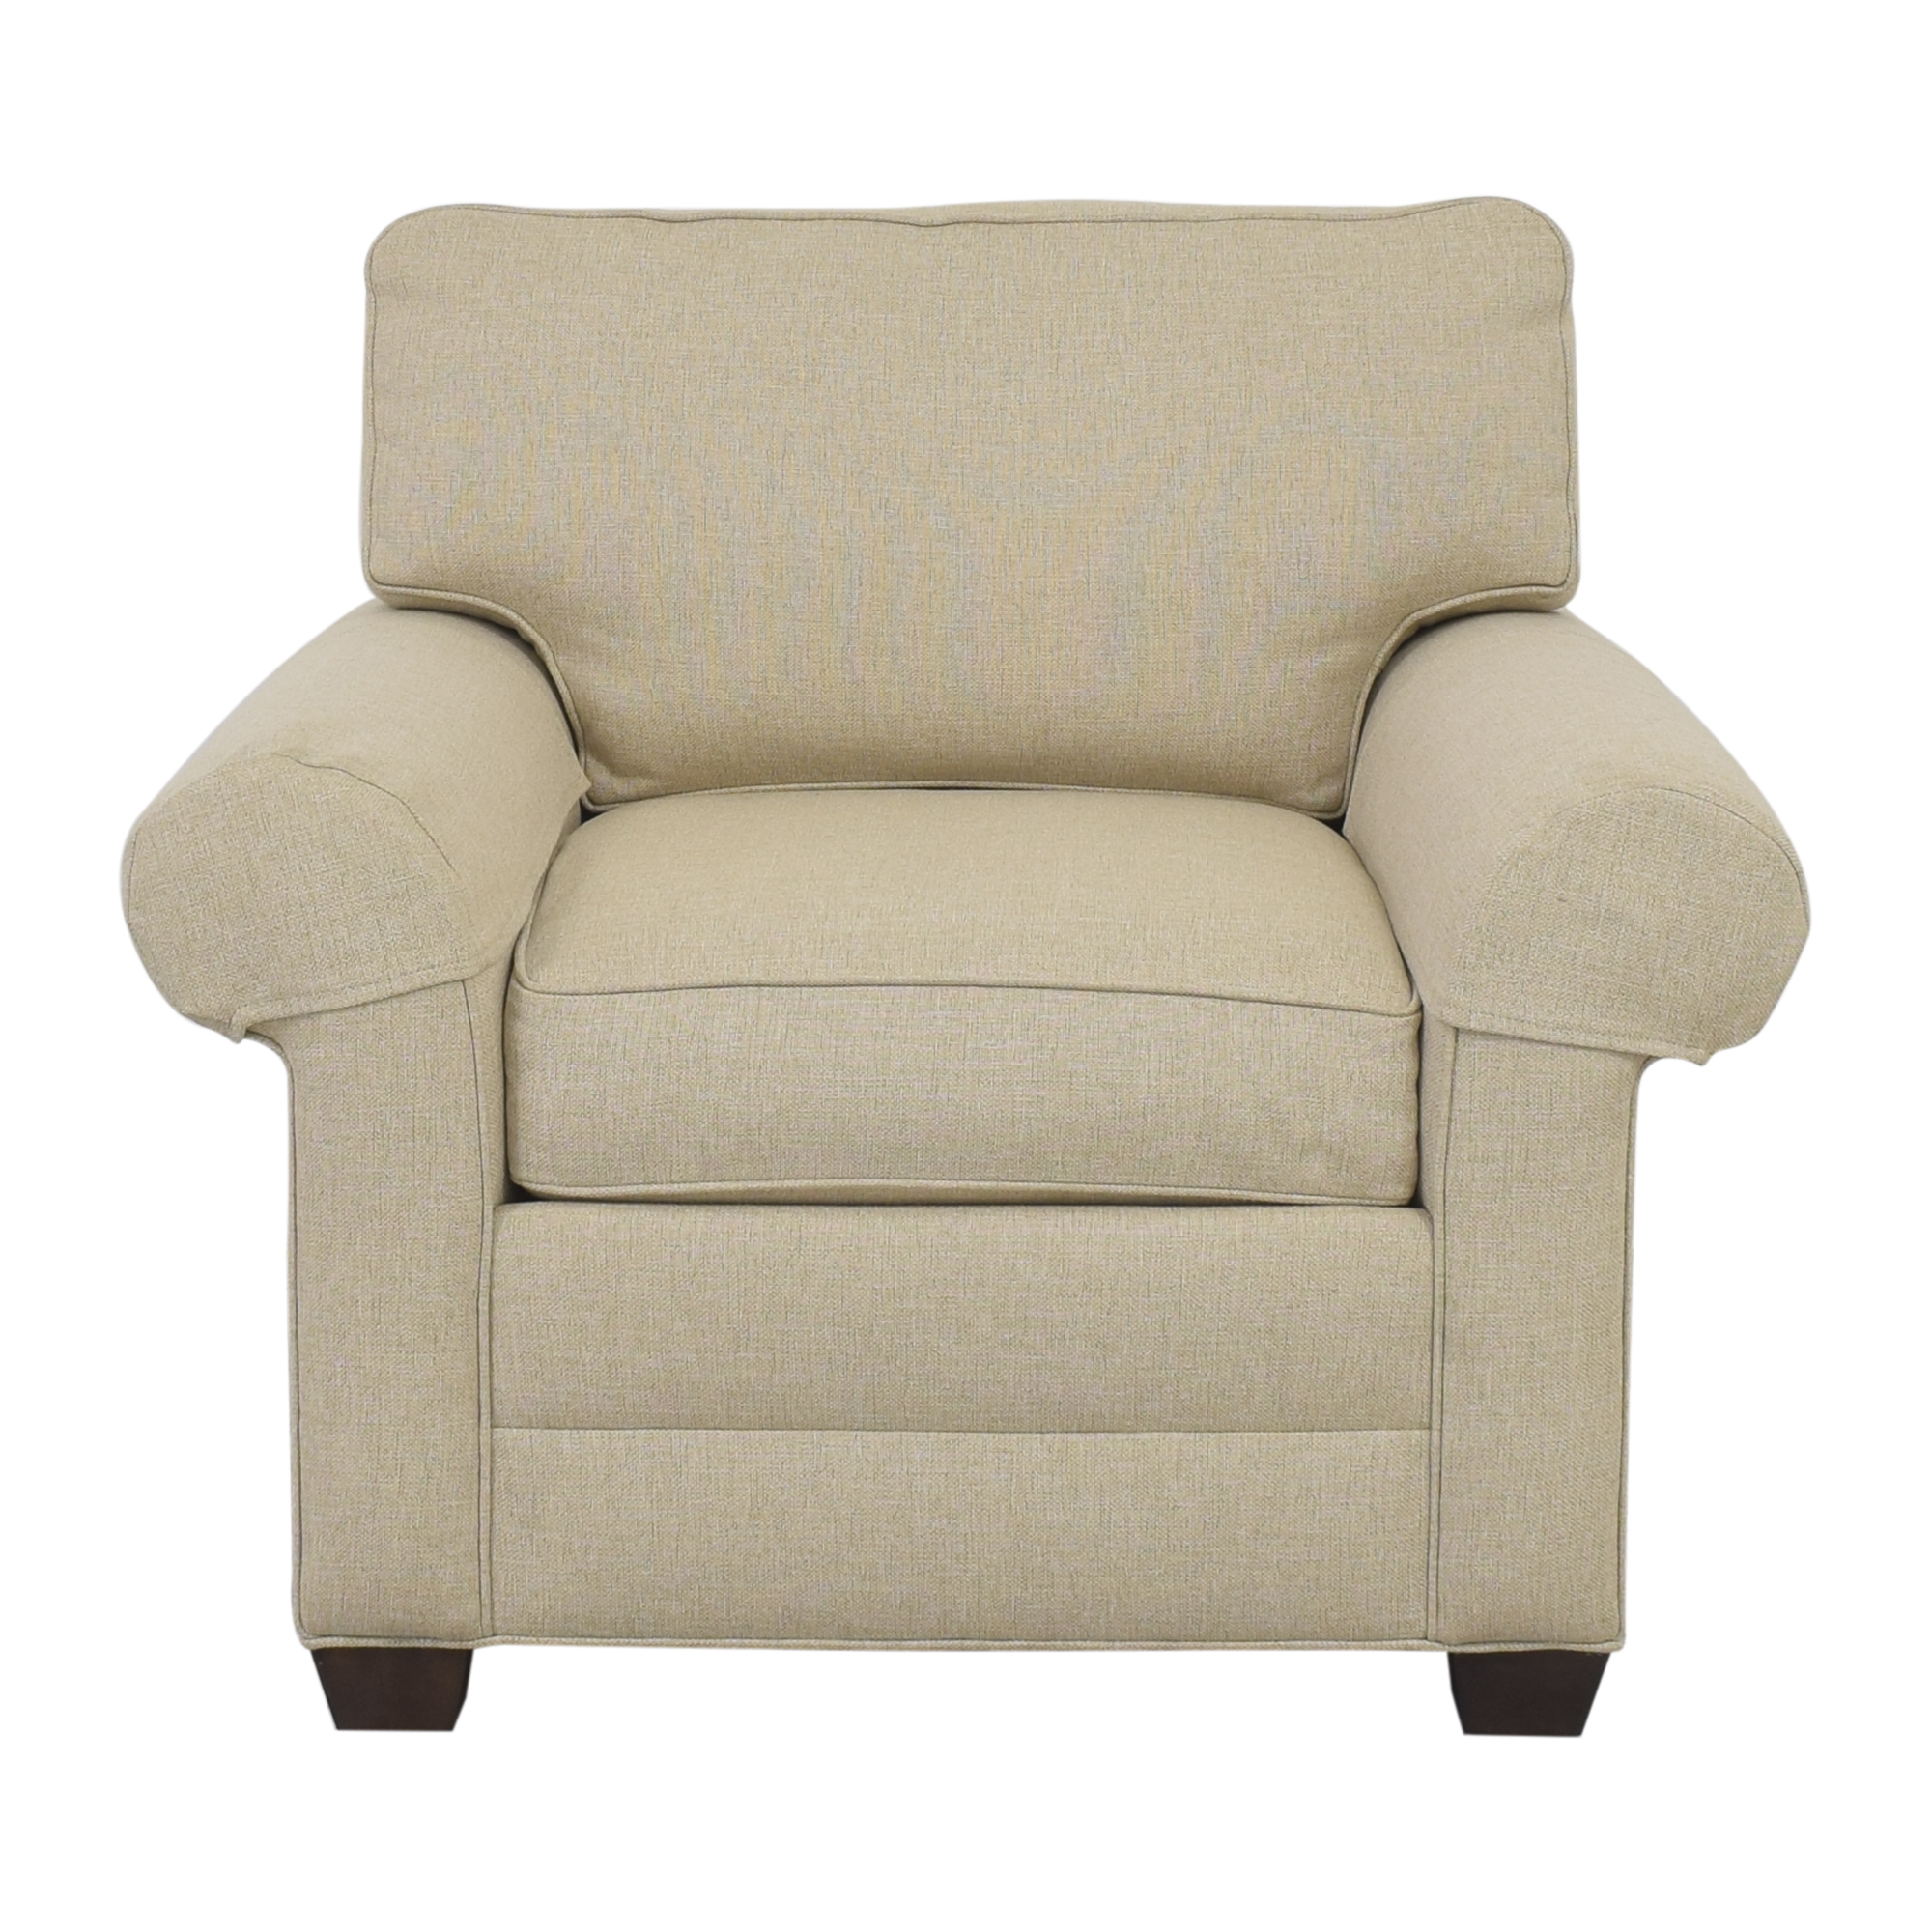 Ethan Allen Ethan Allen Roll Arm Accent Chair price